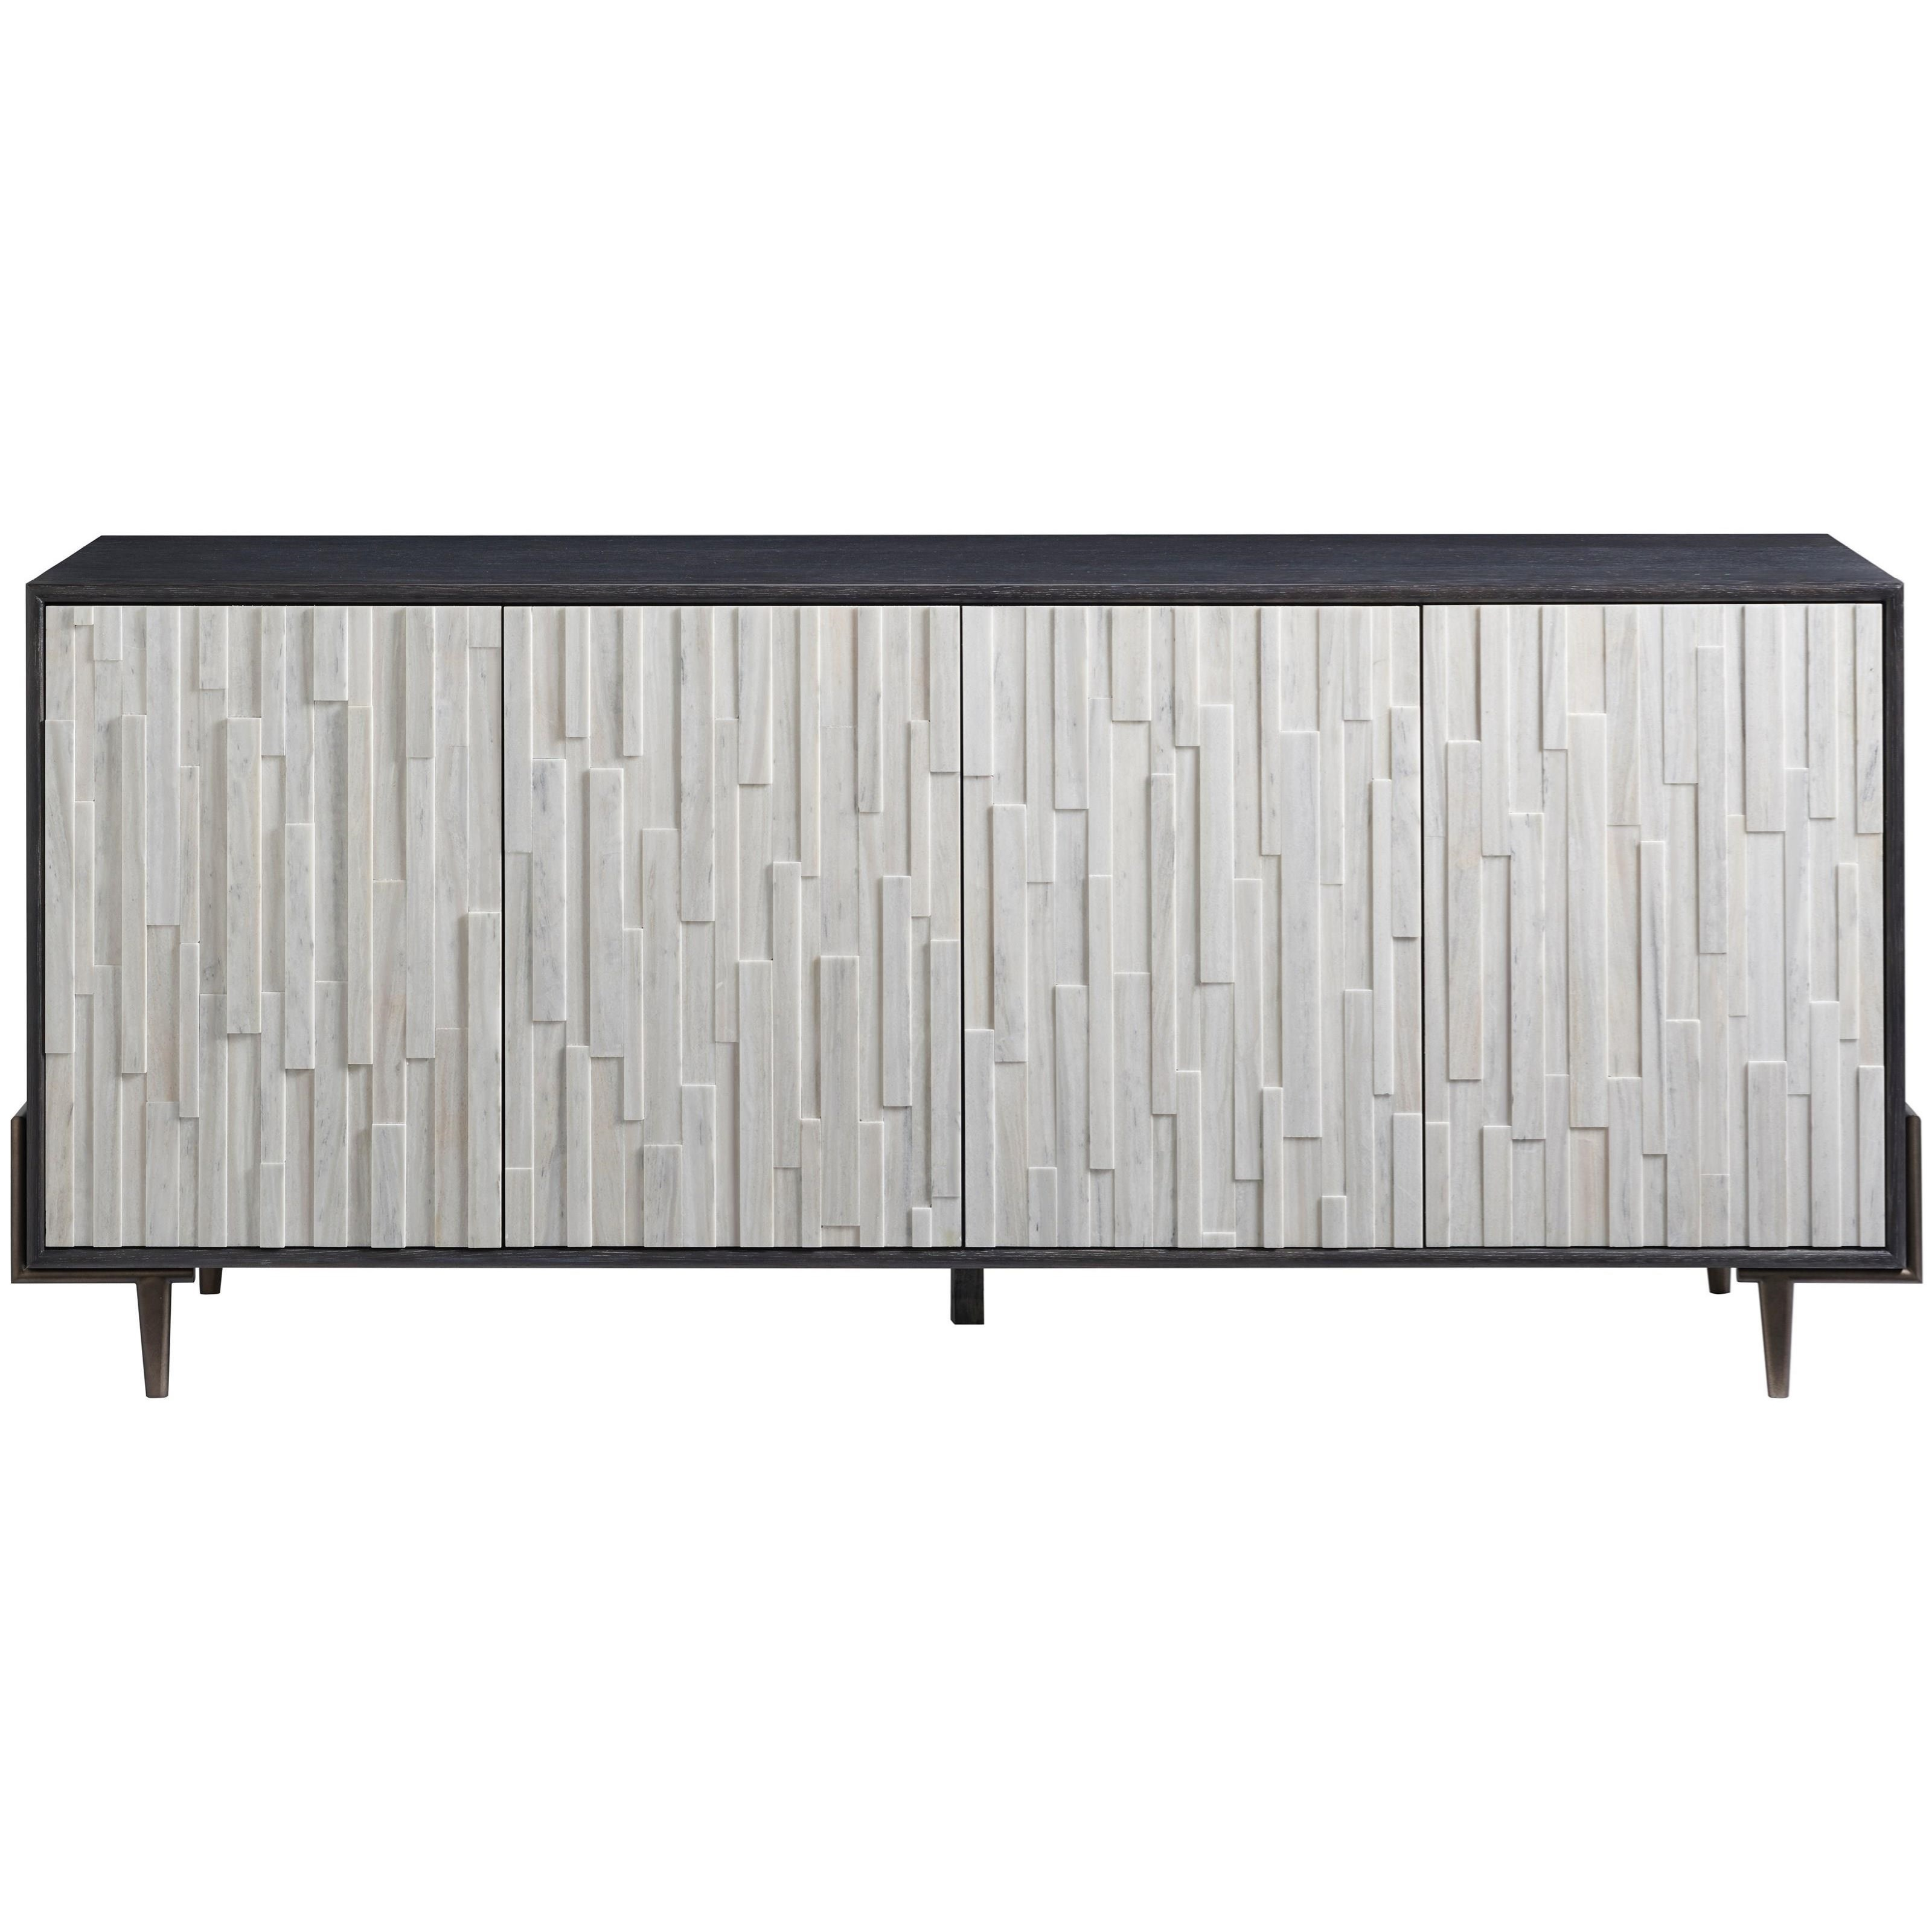 Curated Olso Entertainment Console  by Universal at Baer's Furniture